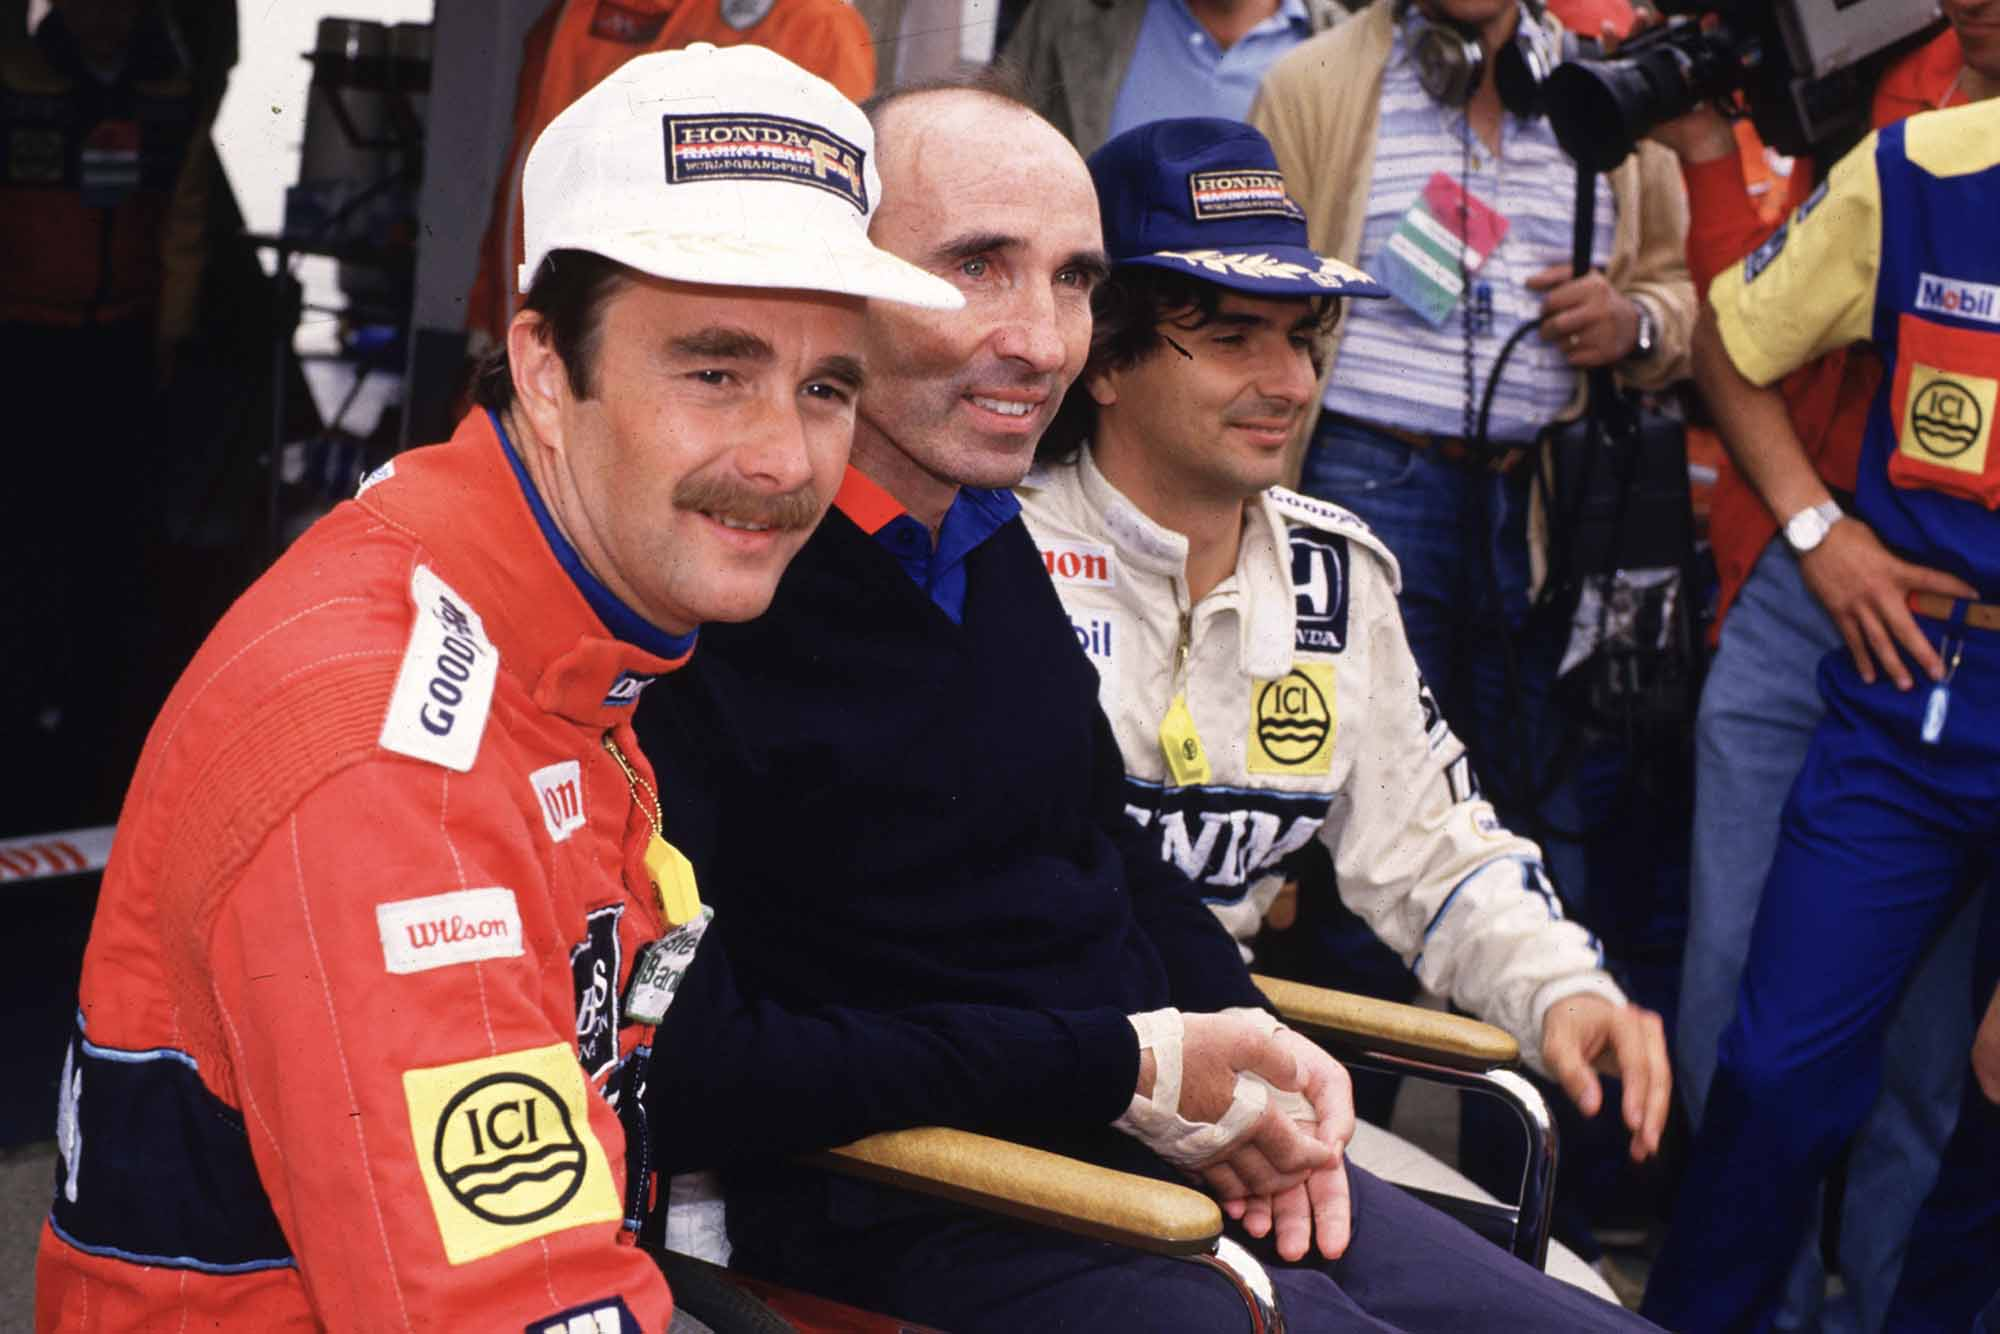 Nigel Mansell, Nelson Piquet and Frank Williams 1986